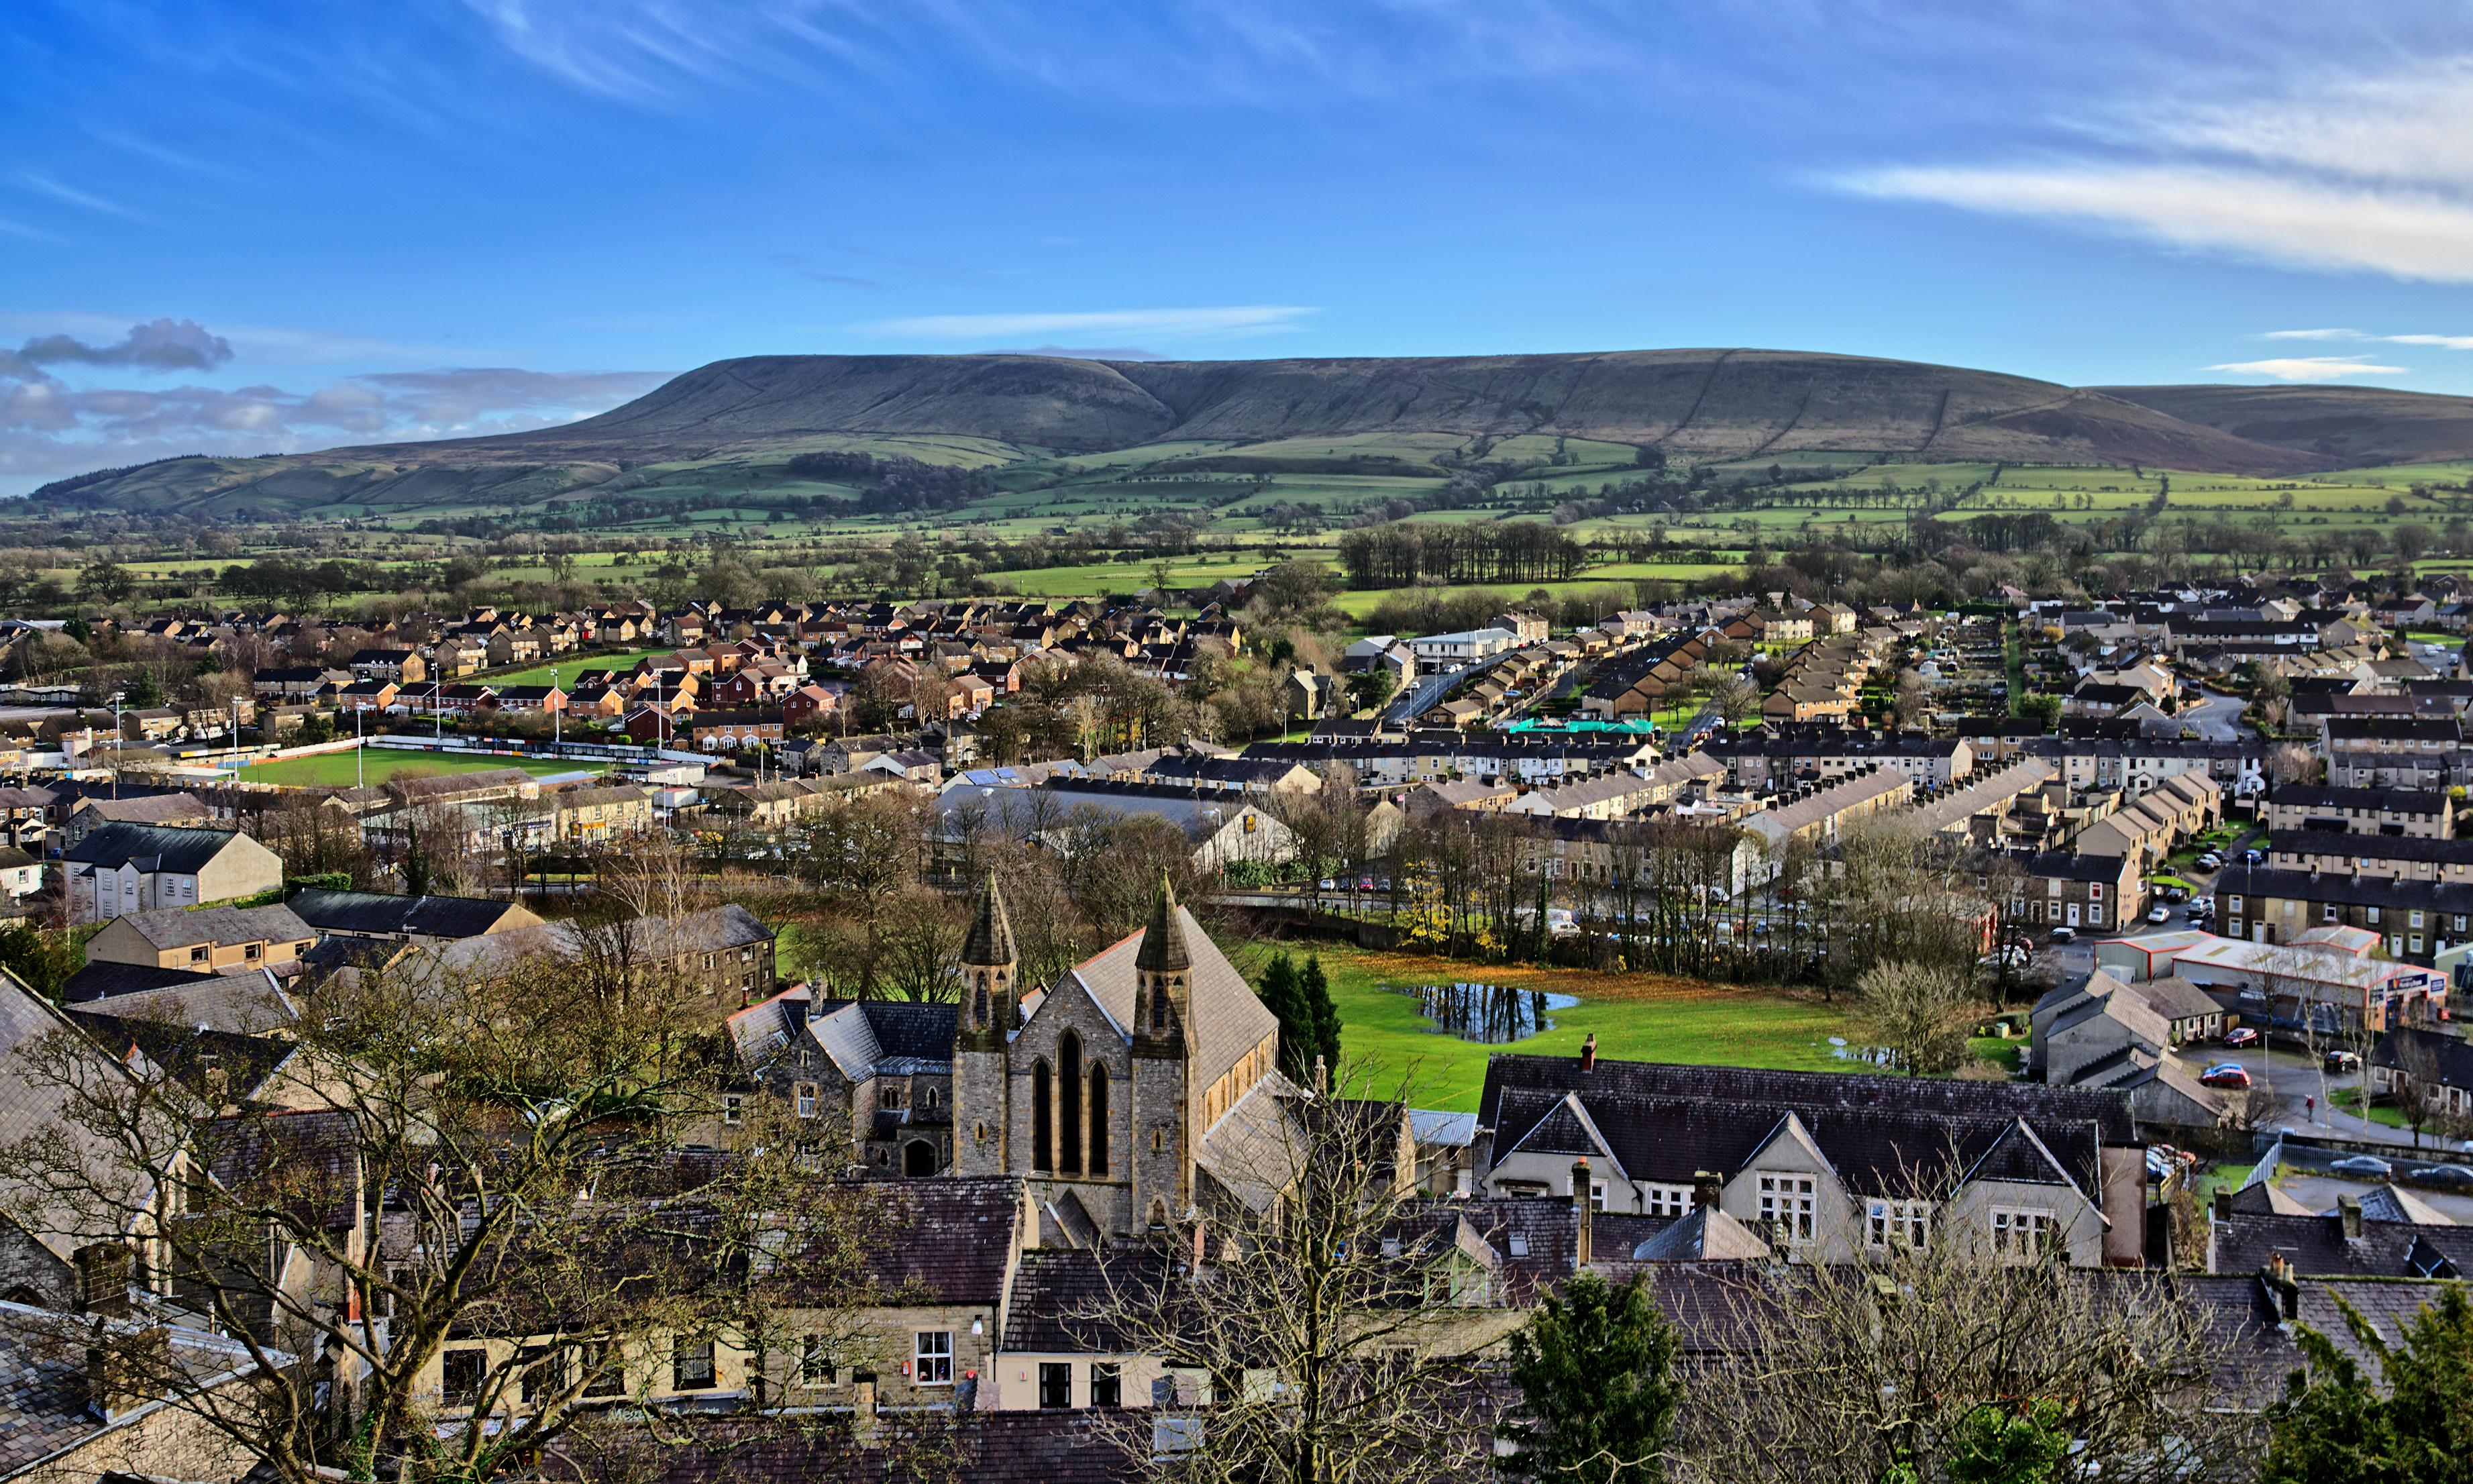 Happy-go-lucky: Ribble Valley officially named UK's happiest place